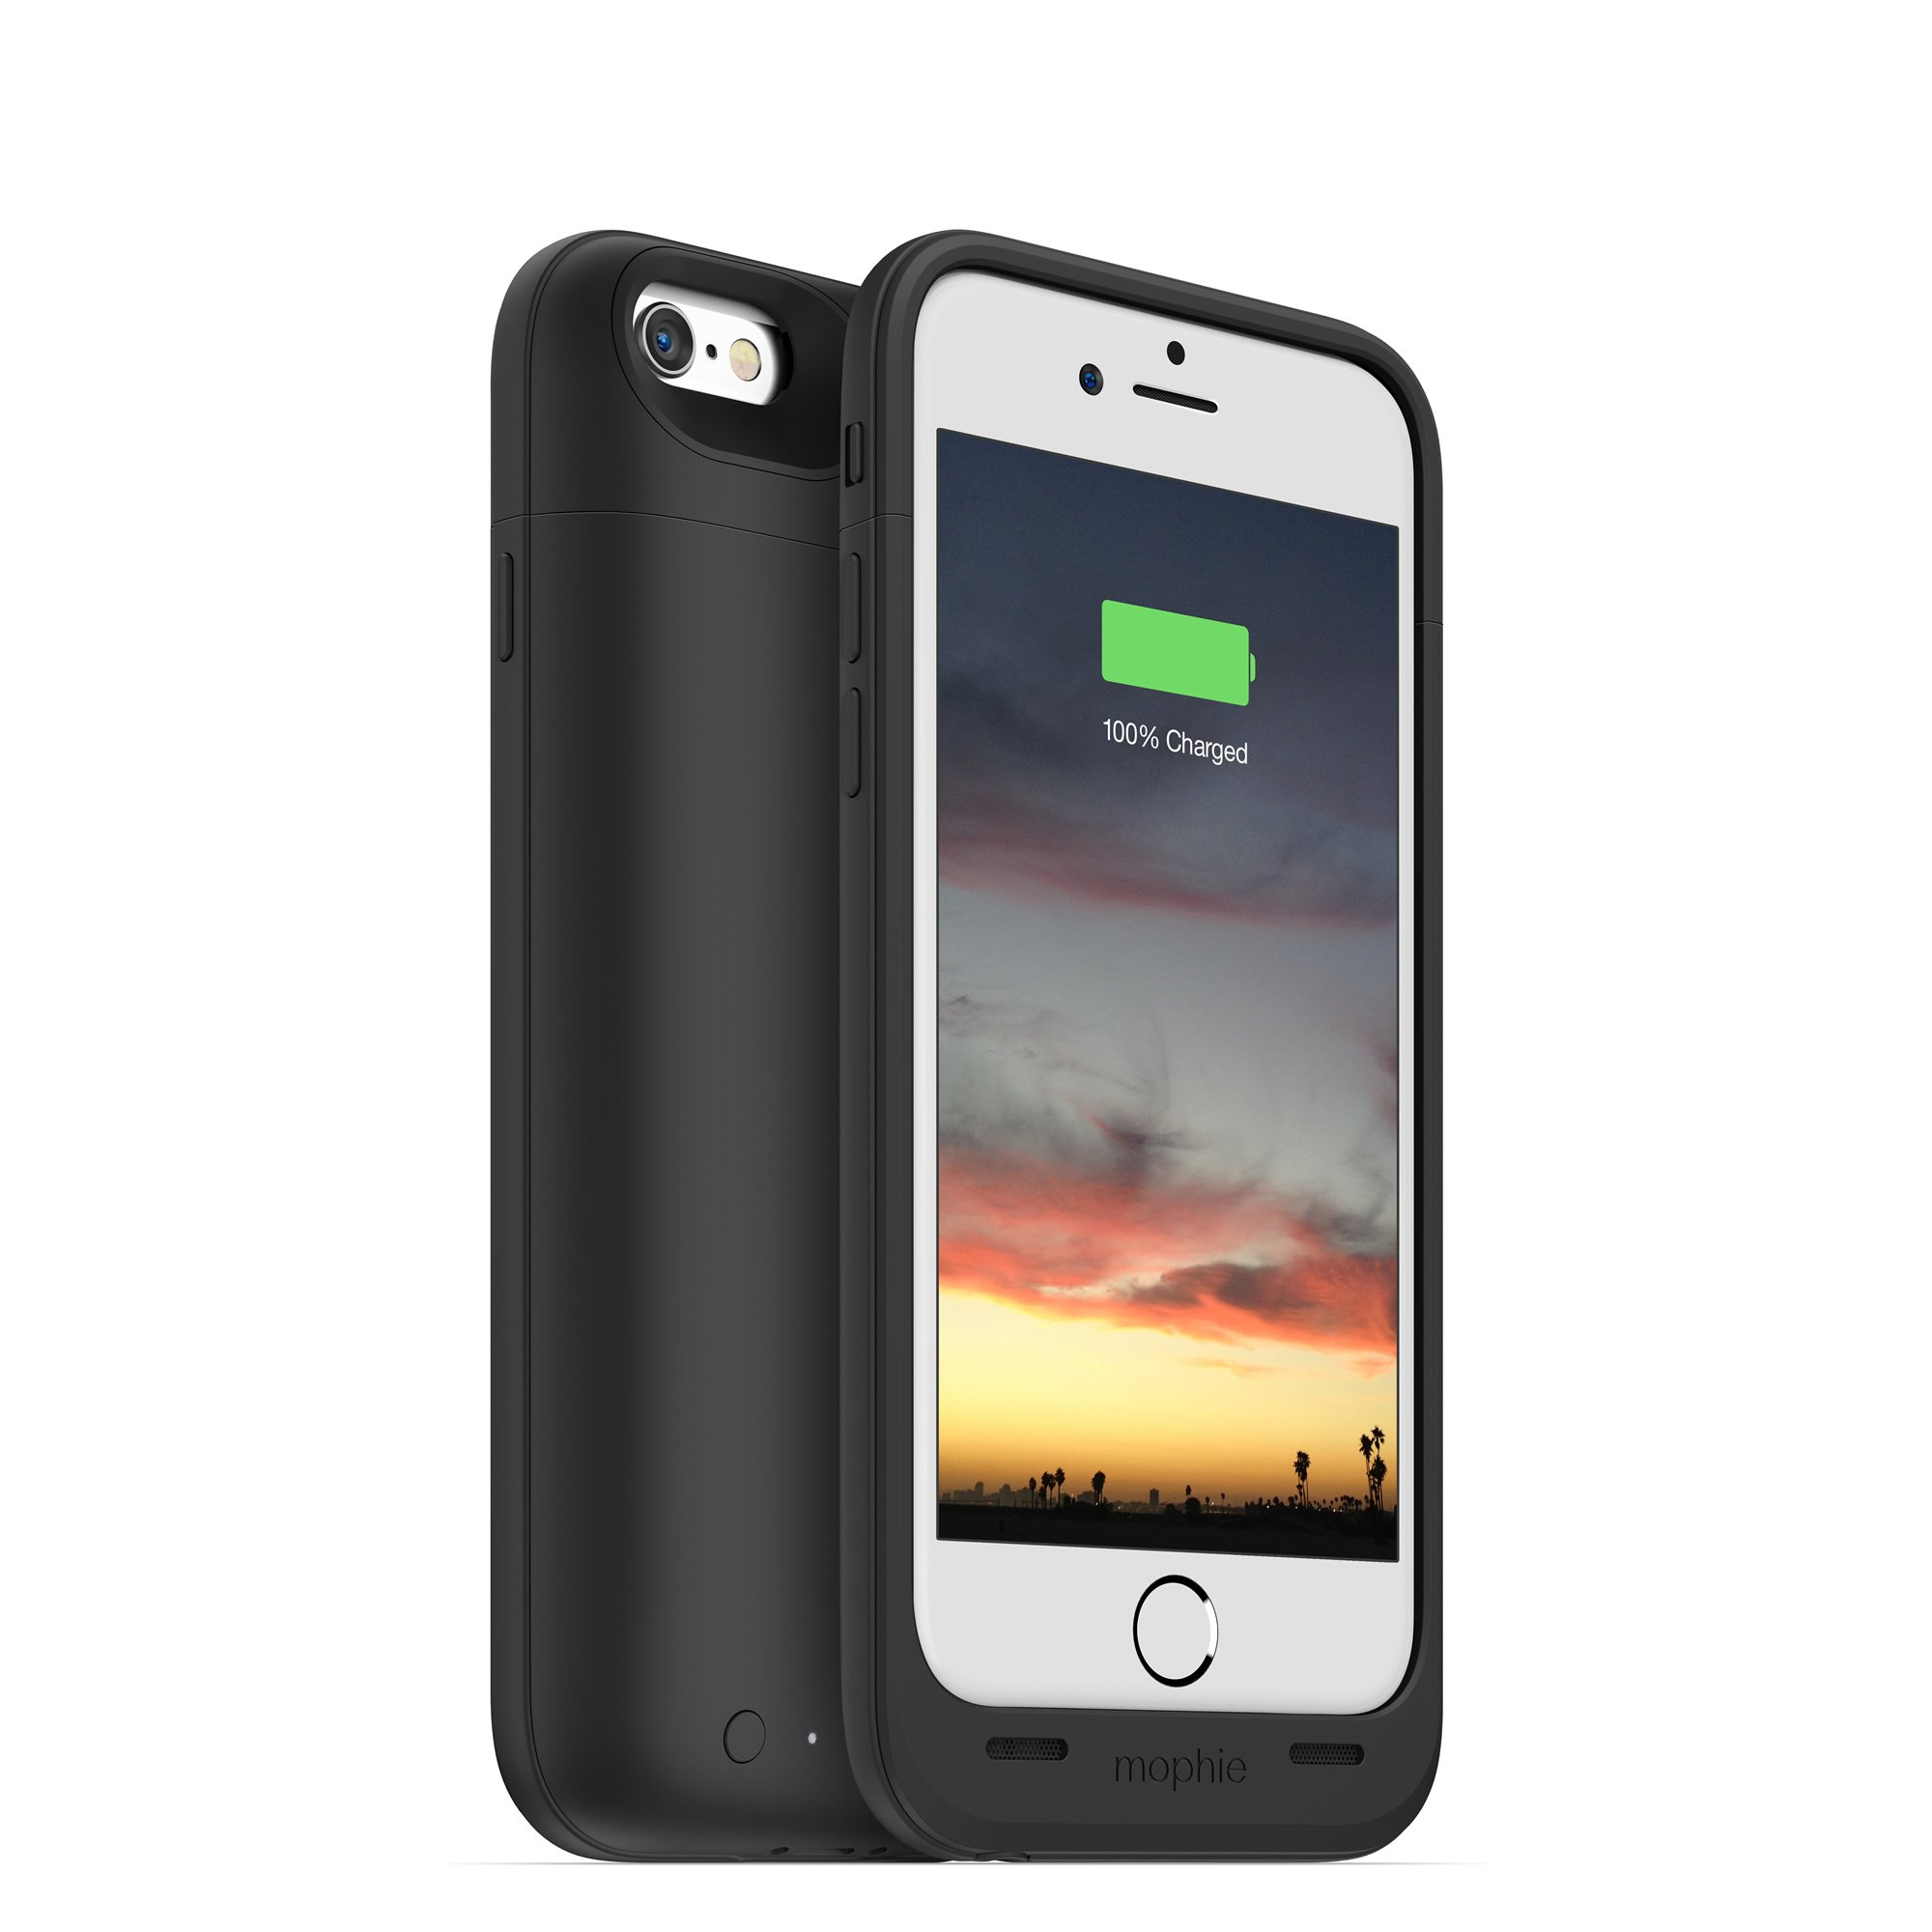 mophie juice pack air - Slim Protective Mobile Battery Pack Case for iPhone 6/6s - Black by mophie (Image #8)